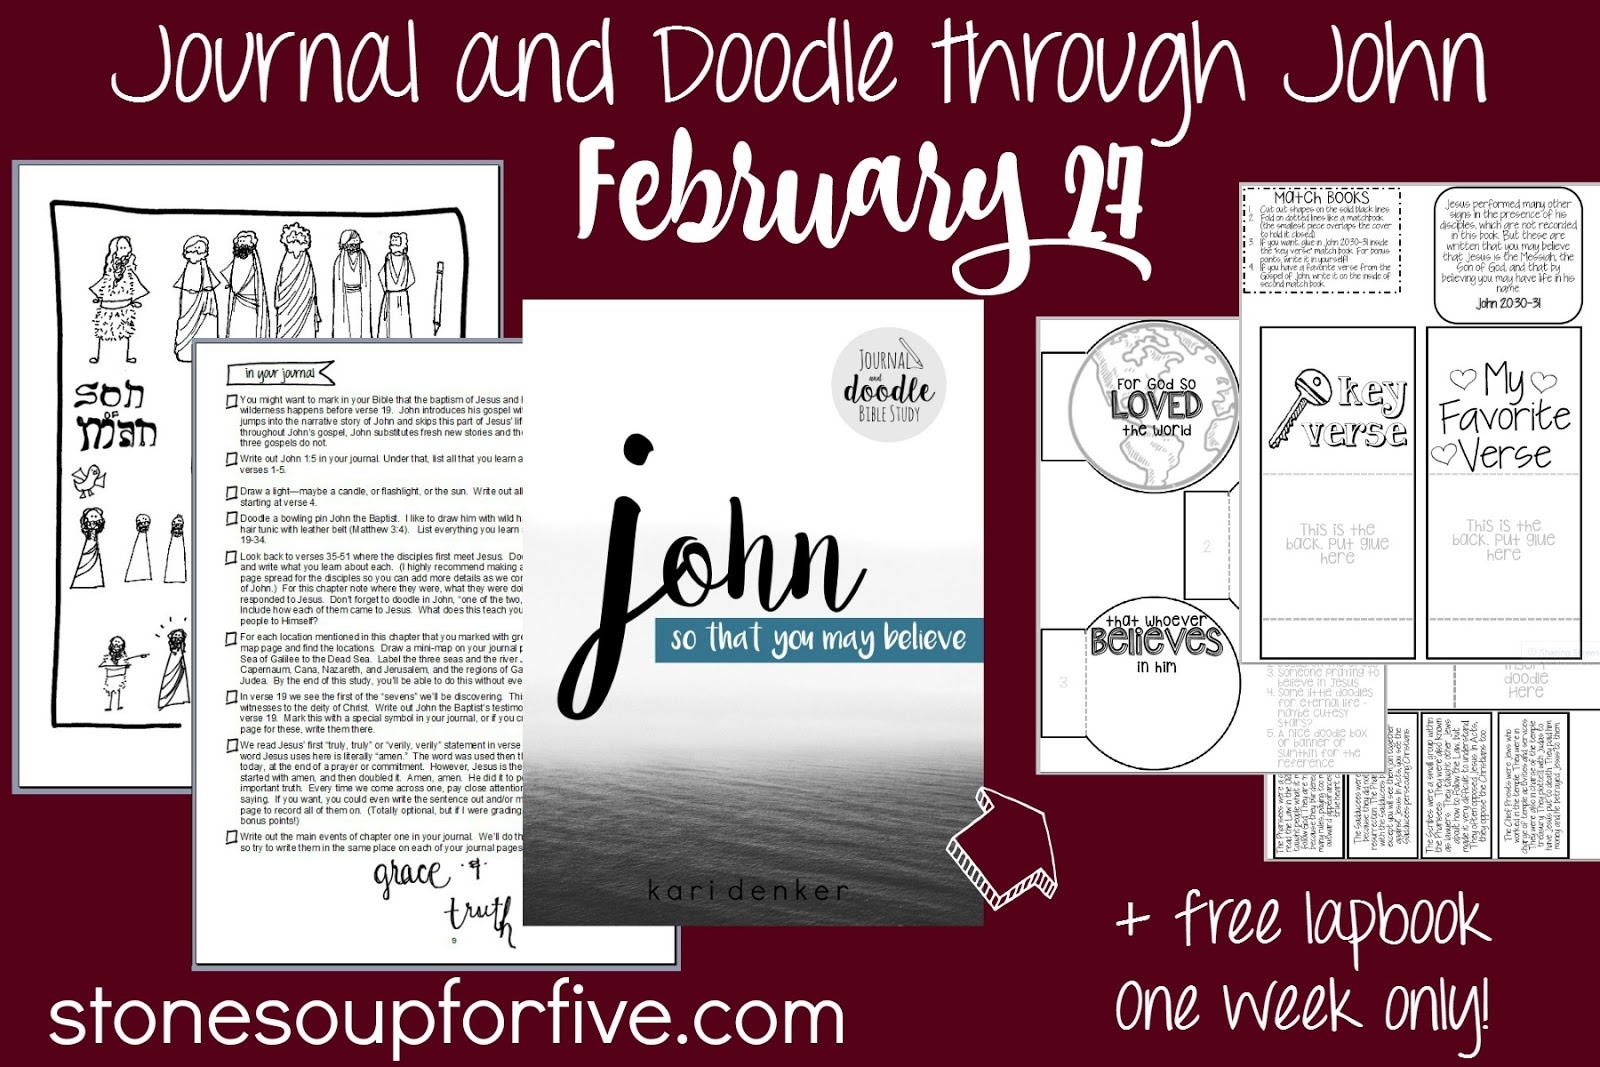 Stone Soup for Five: Coming SOON! Bible study through John with free